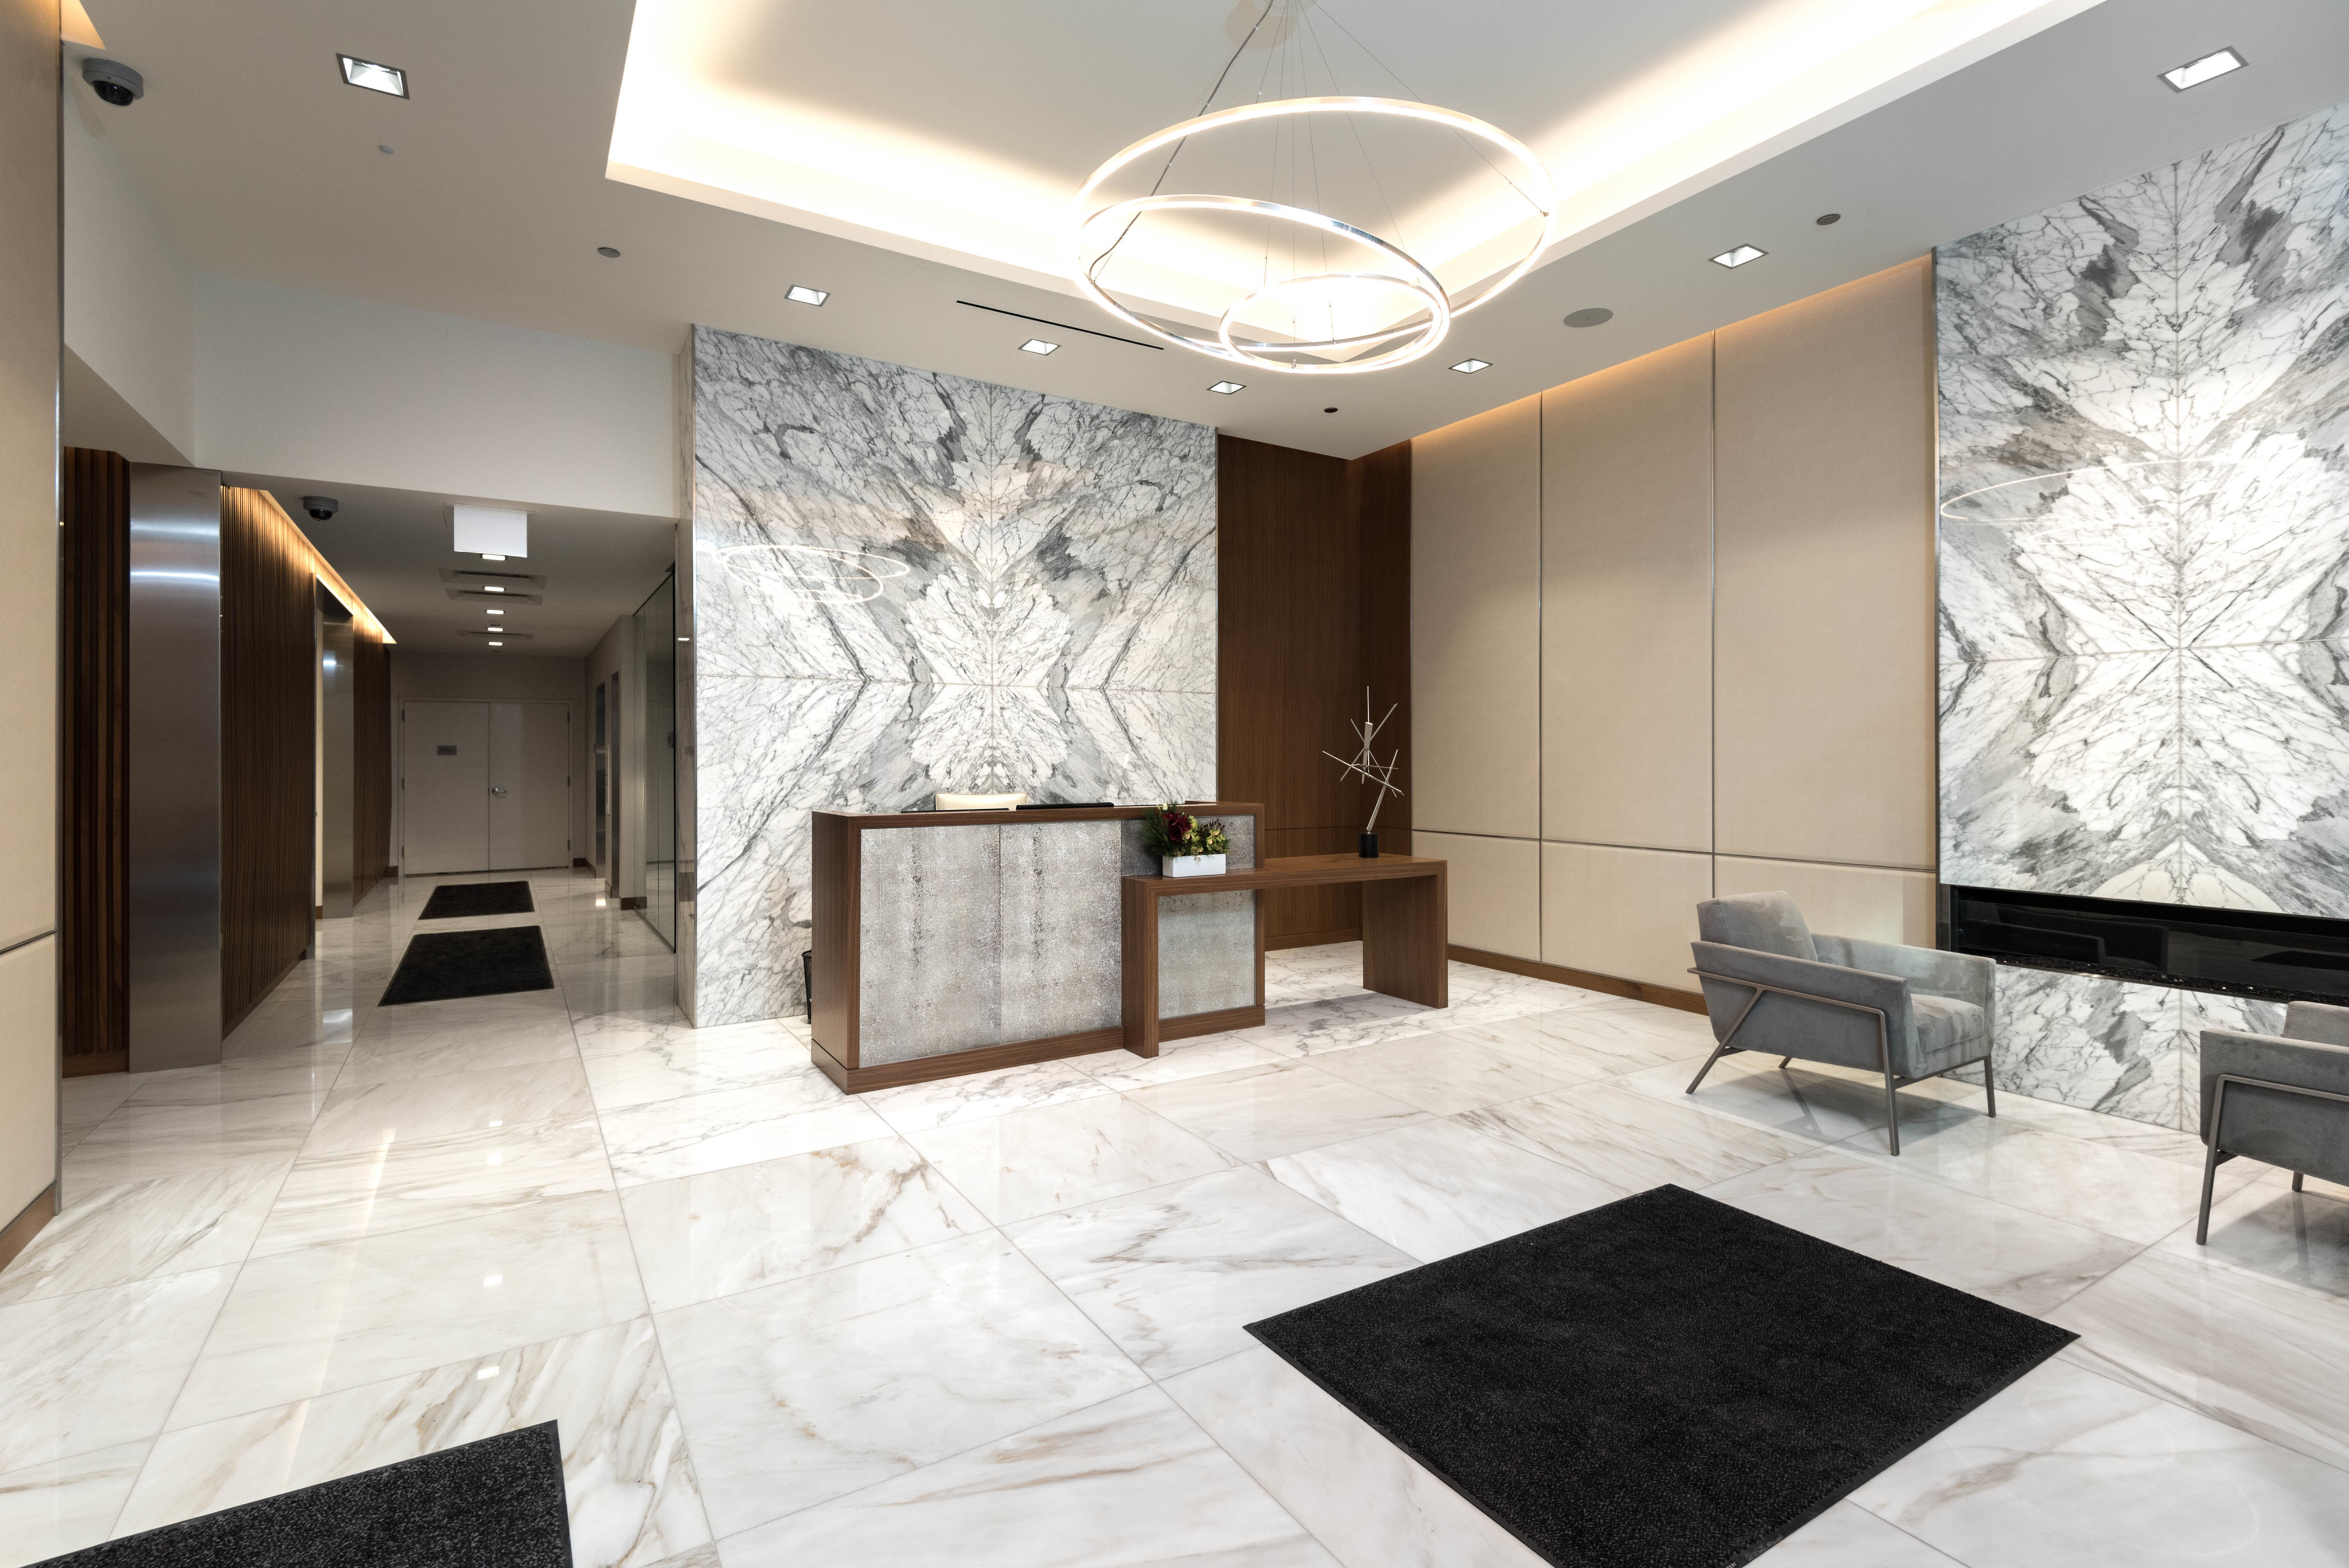 Amenities at 8 East Huron | Luxury Apartments in River North